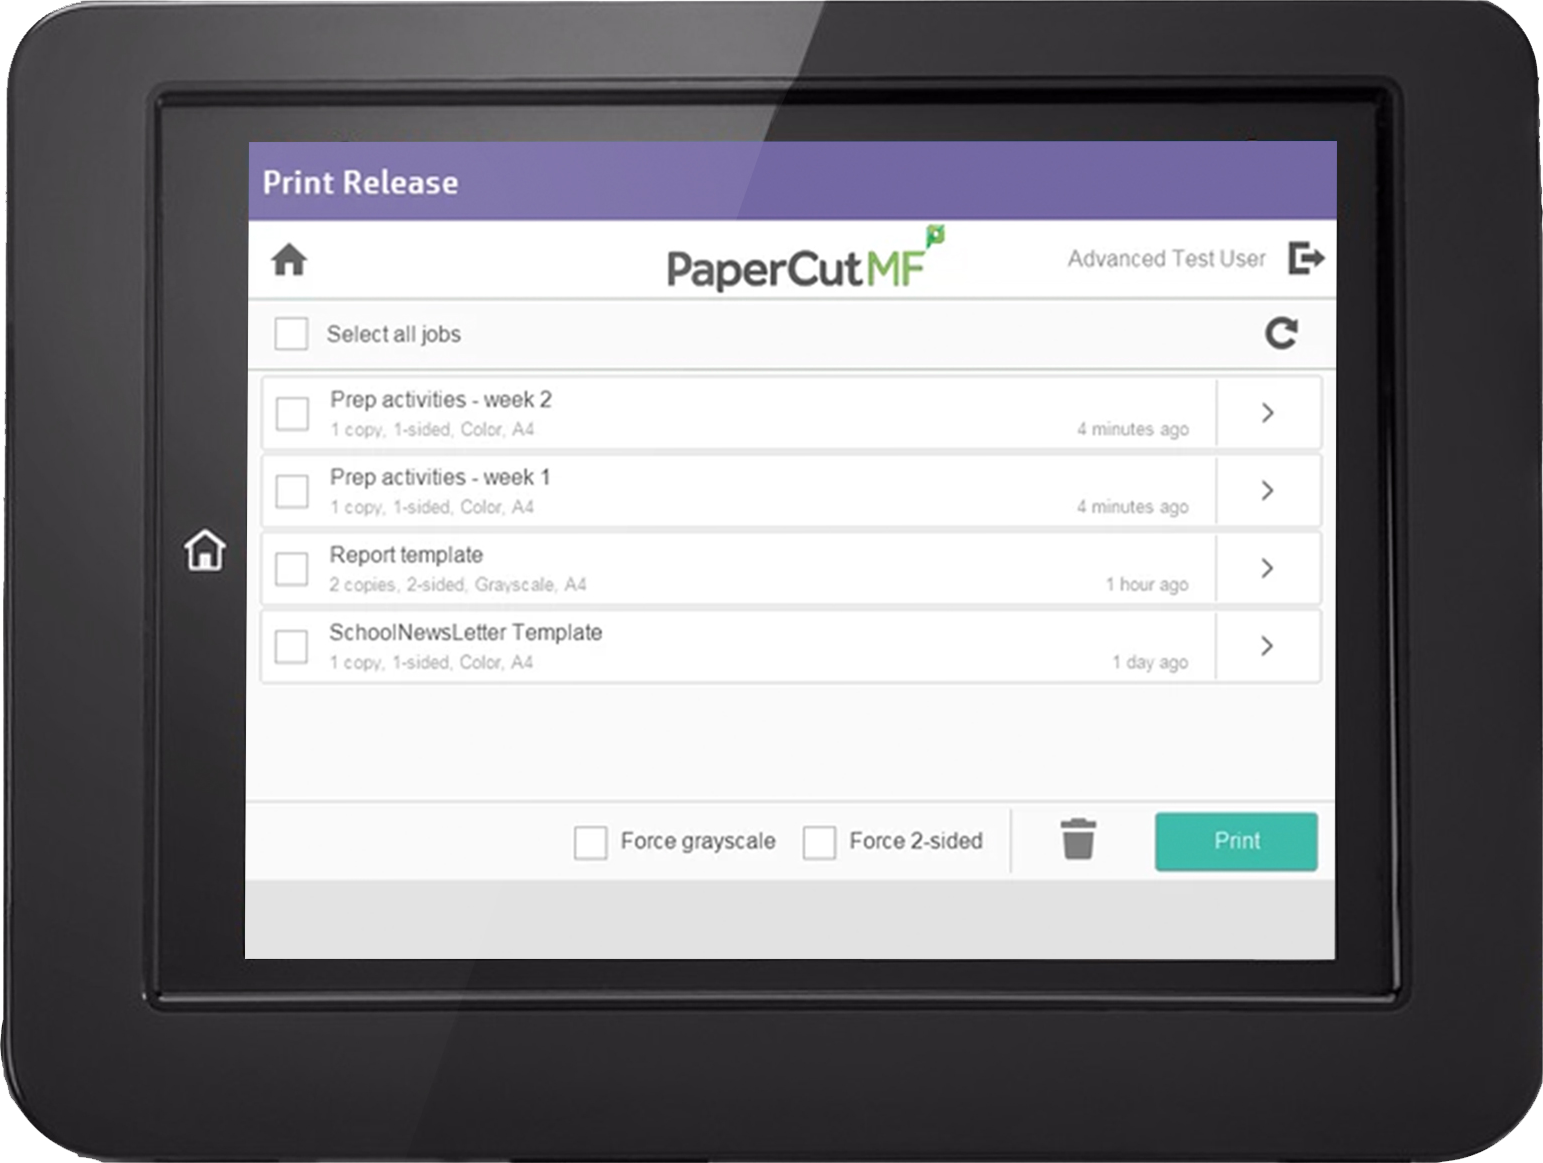 PaperCut MF print release interface